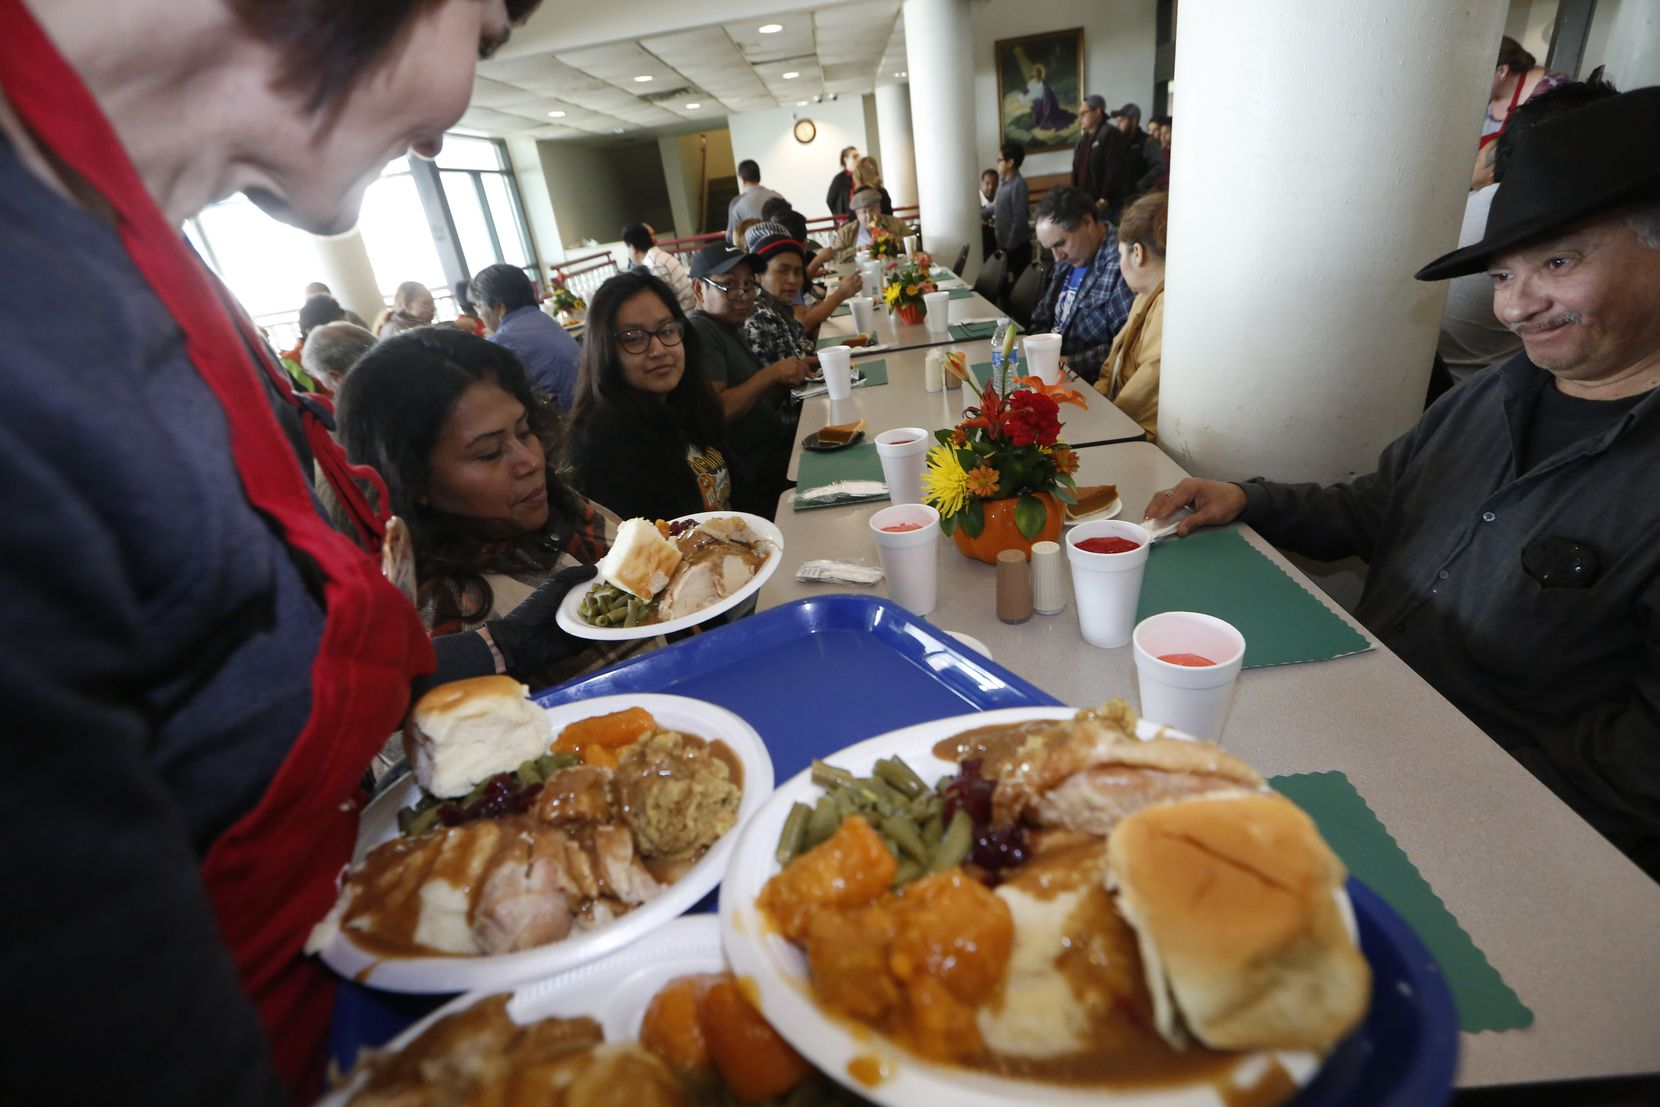 From left: Jacqueline Gonzalez, Sara Carlos and Vincent Camacho are served their Thanksgiving meal at The Salvation Army in Dallas last November.